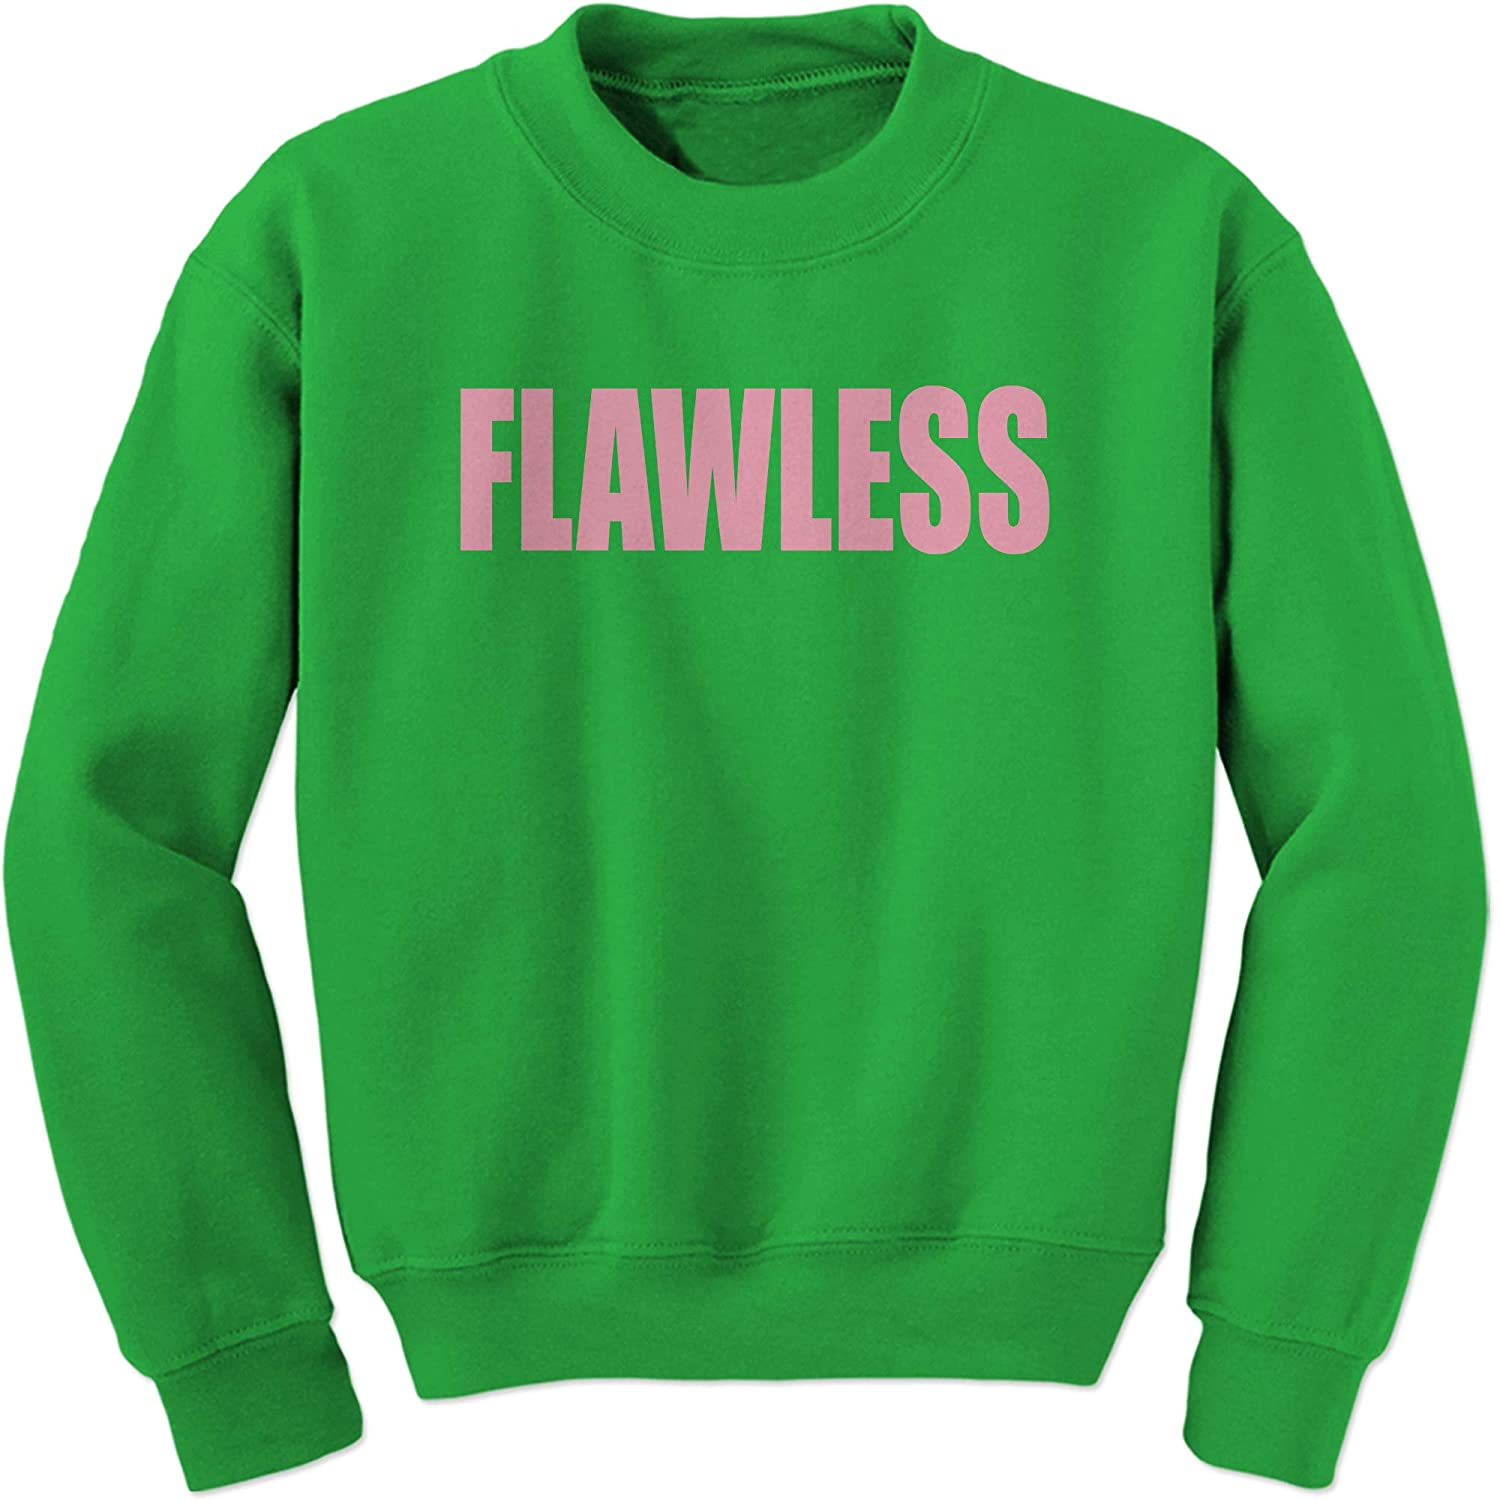 Expression Tees Flawless Crewneck Sweatshirt 1266-C